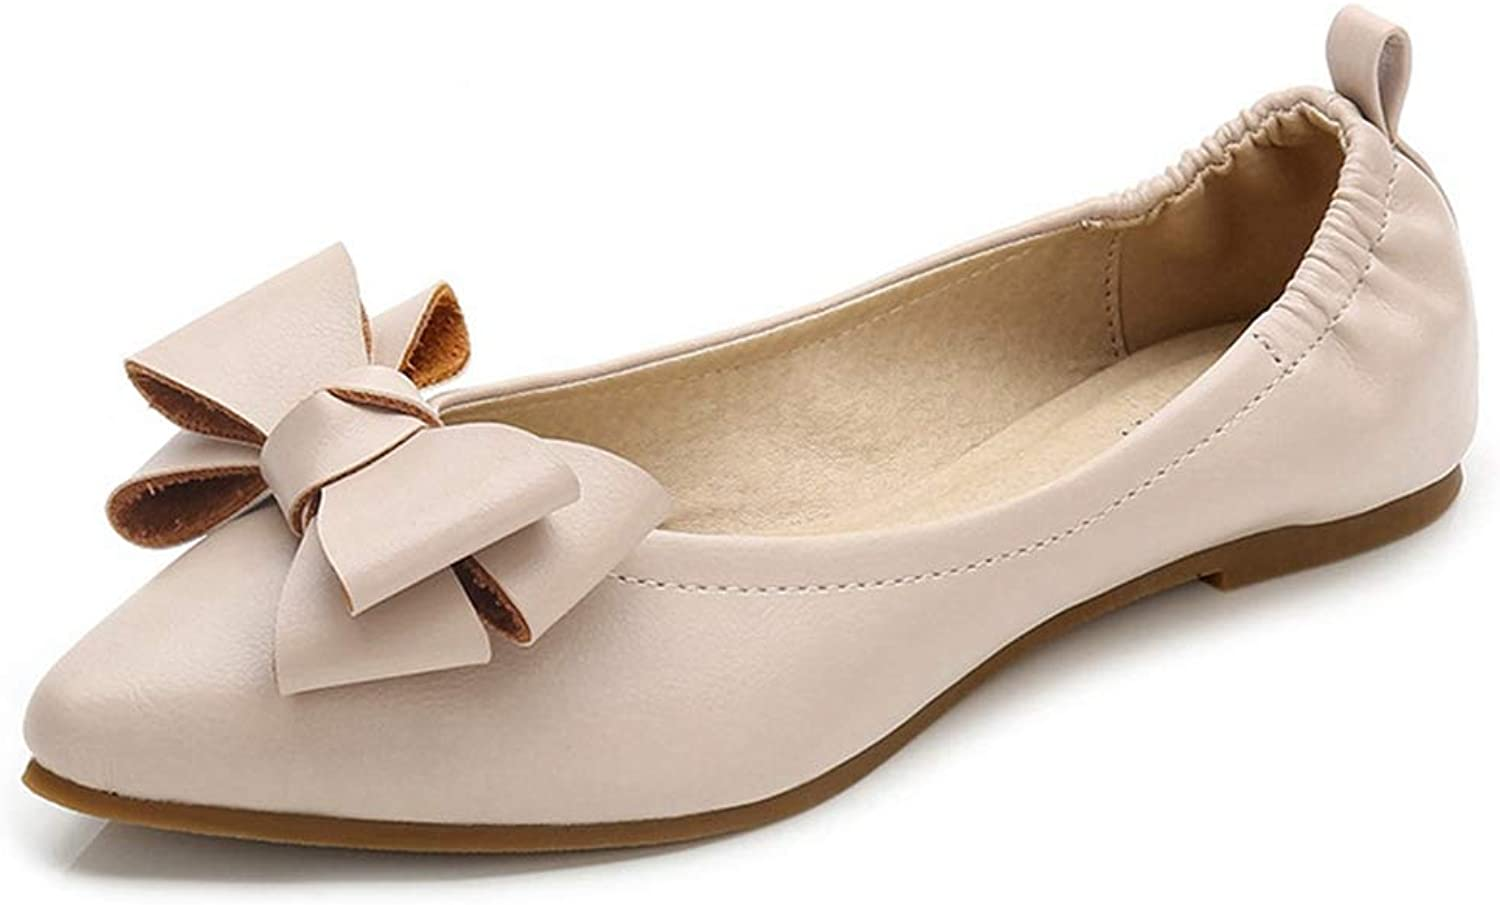 CYBLING Women's Comfort Bow Pointed Toe Ballet Flats Light Soft Slip On Casual shoes